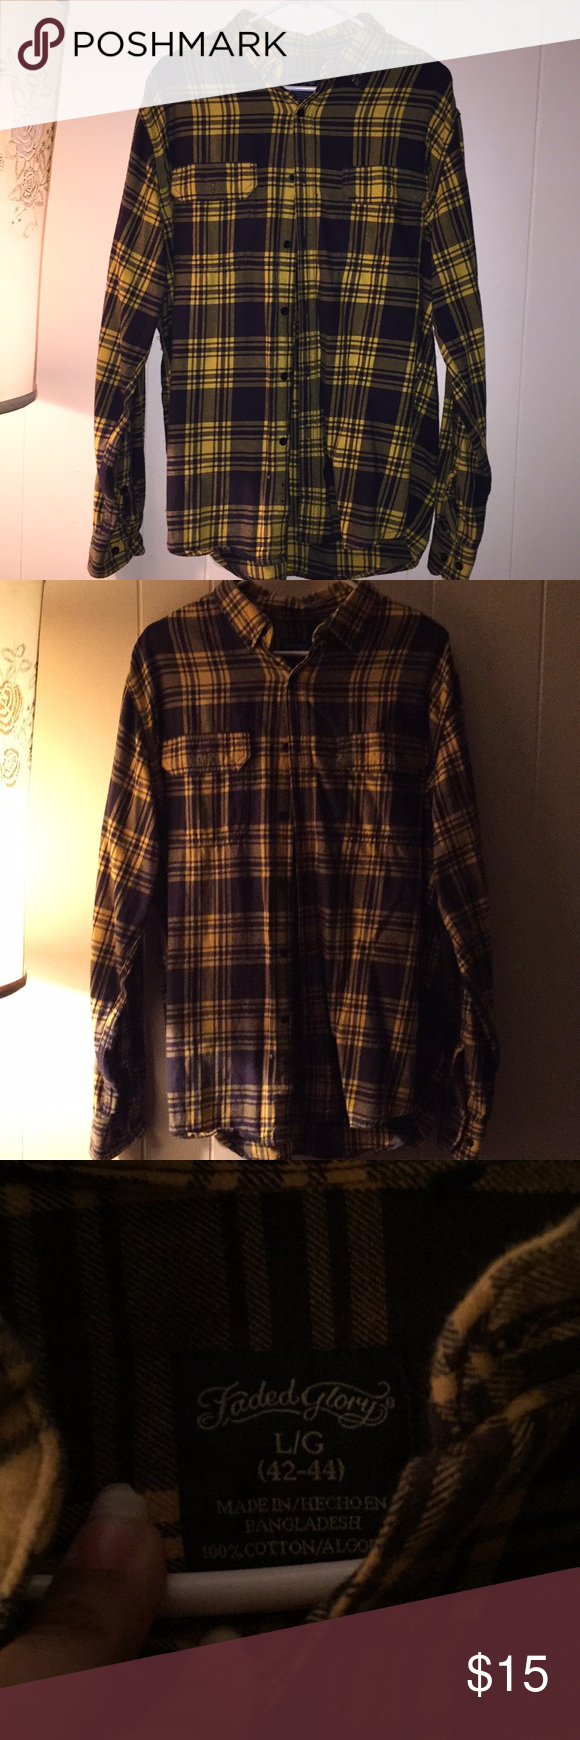 Big flannel outfits  Black and Yellow Flannel  My Posh Closet  Pinterest  Flannels